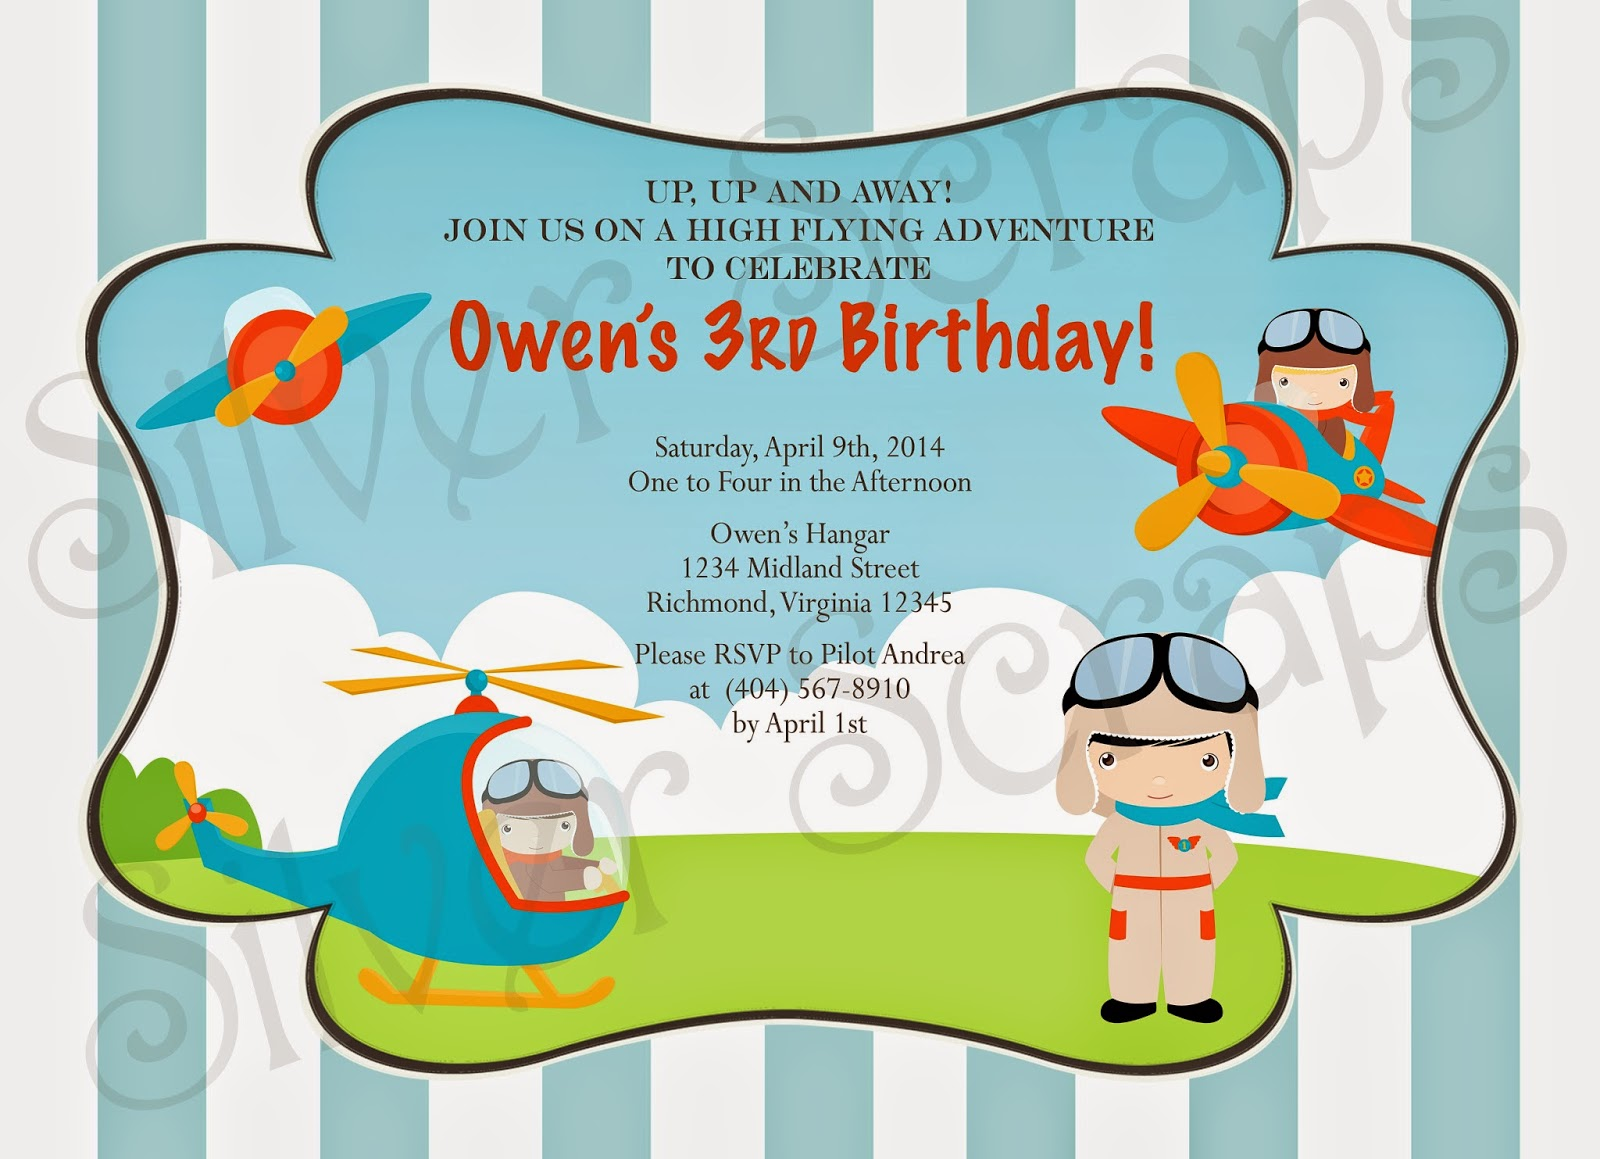 Up, Up, and Away - Custom Digital Airplane Birthday Invitation -Boy Plane Fly Flying Helicopter Pilot Red Blue Yellow - 5 Printable Designs aviator blue chevron red yellow orange helicopter goggles blue stripes